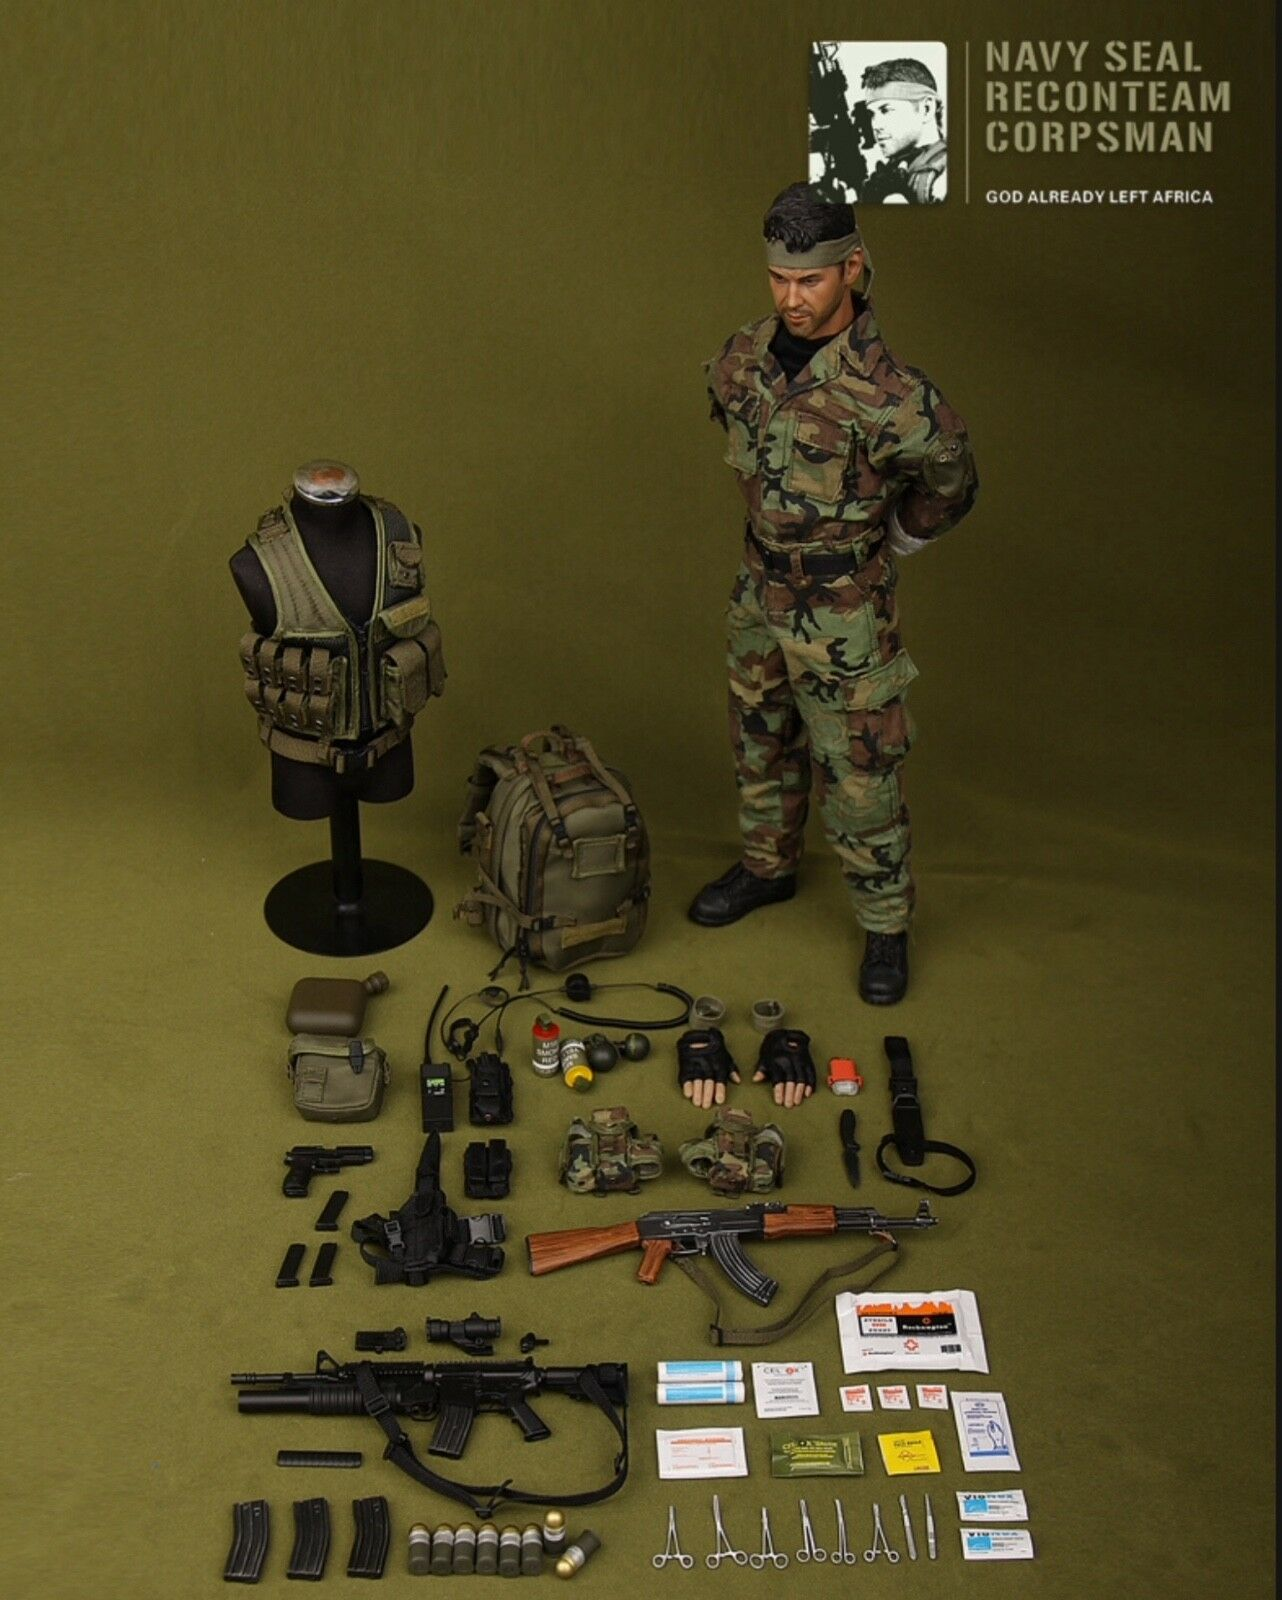 DAMTOYS 1 6 scale US Navy Seal Recon Team 'Corpsman' Boxed figure